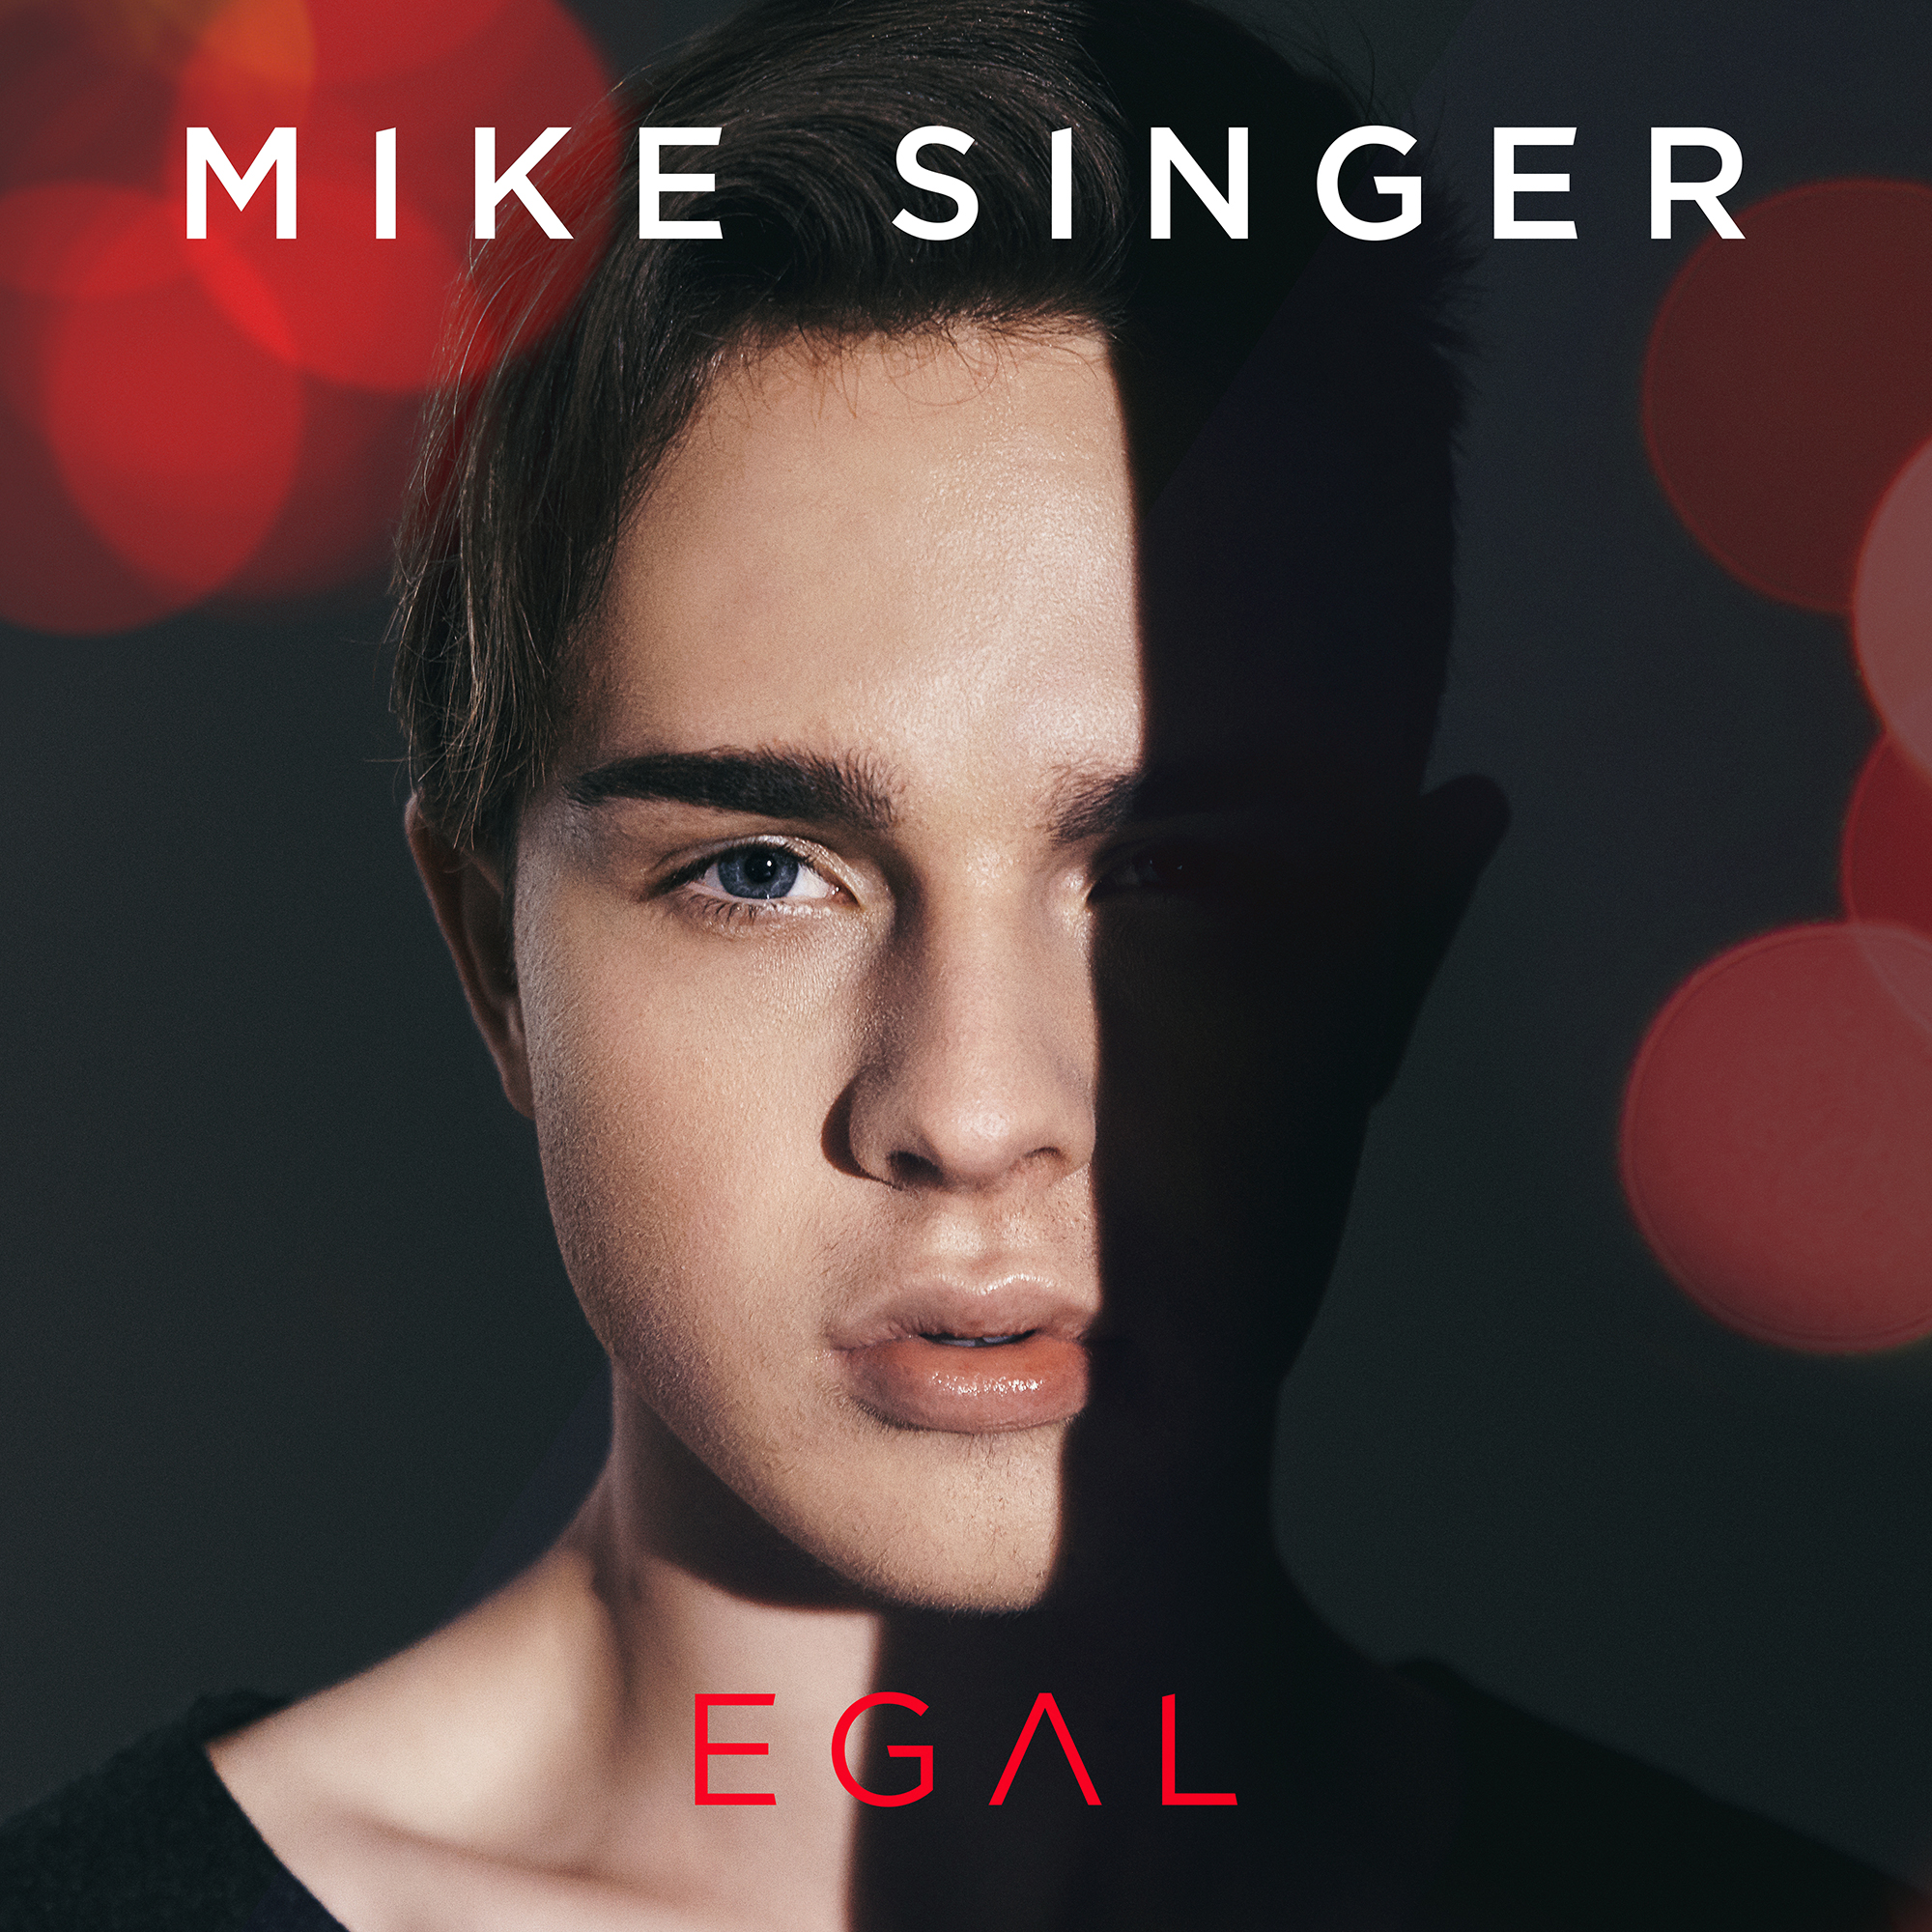 egal mike singer text